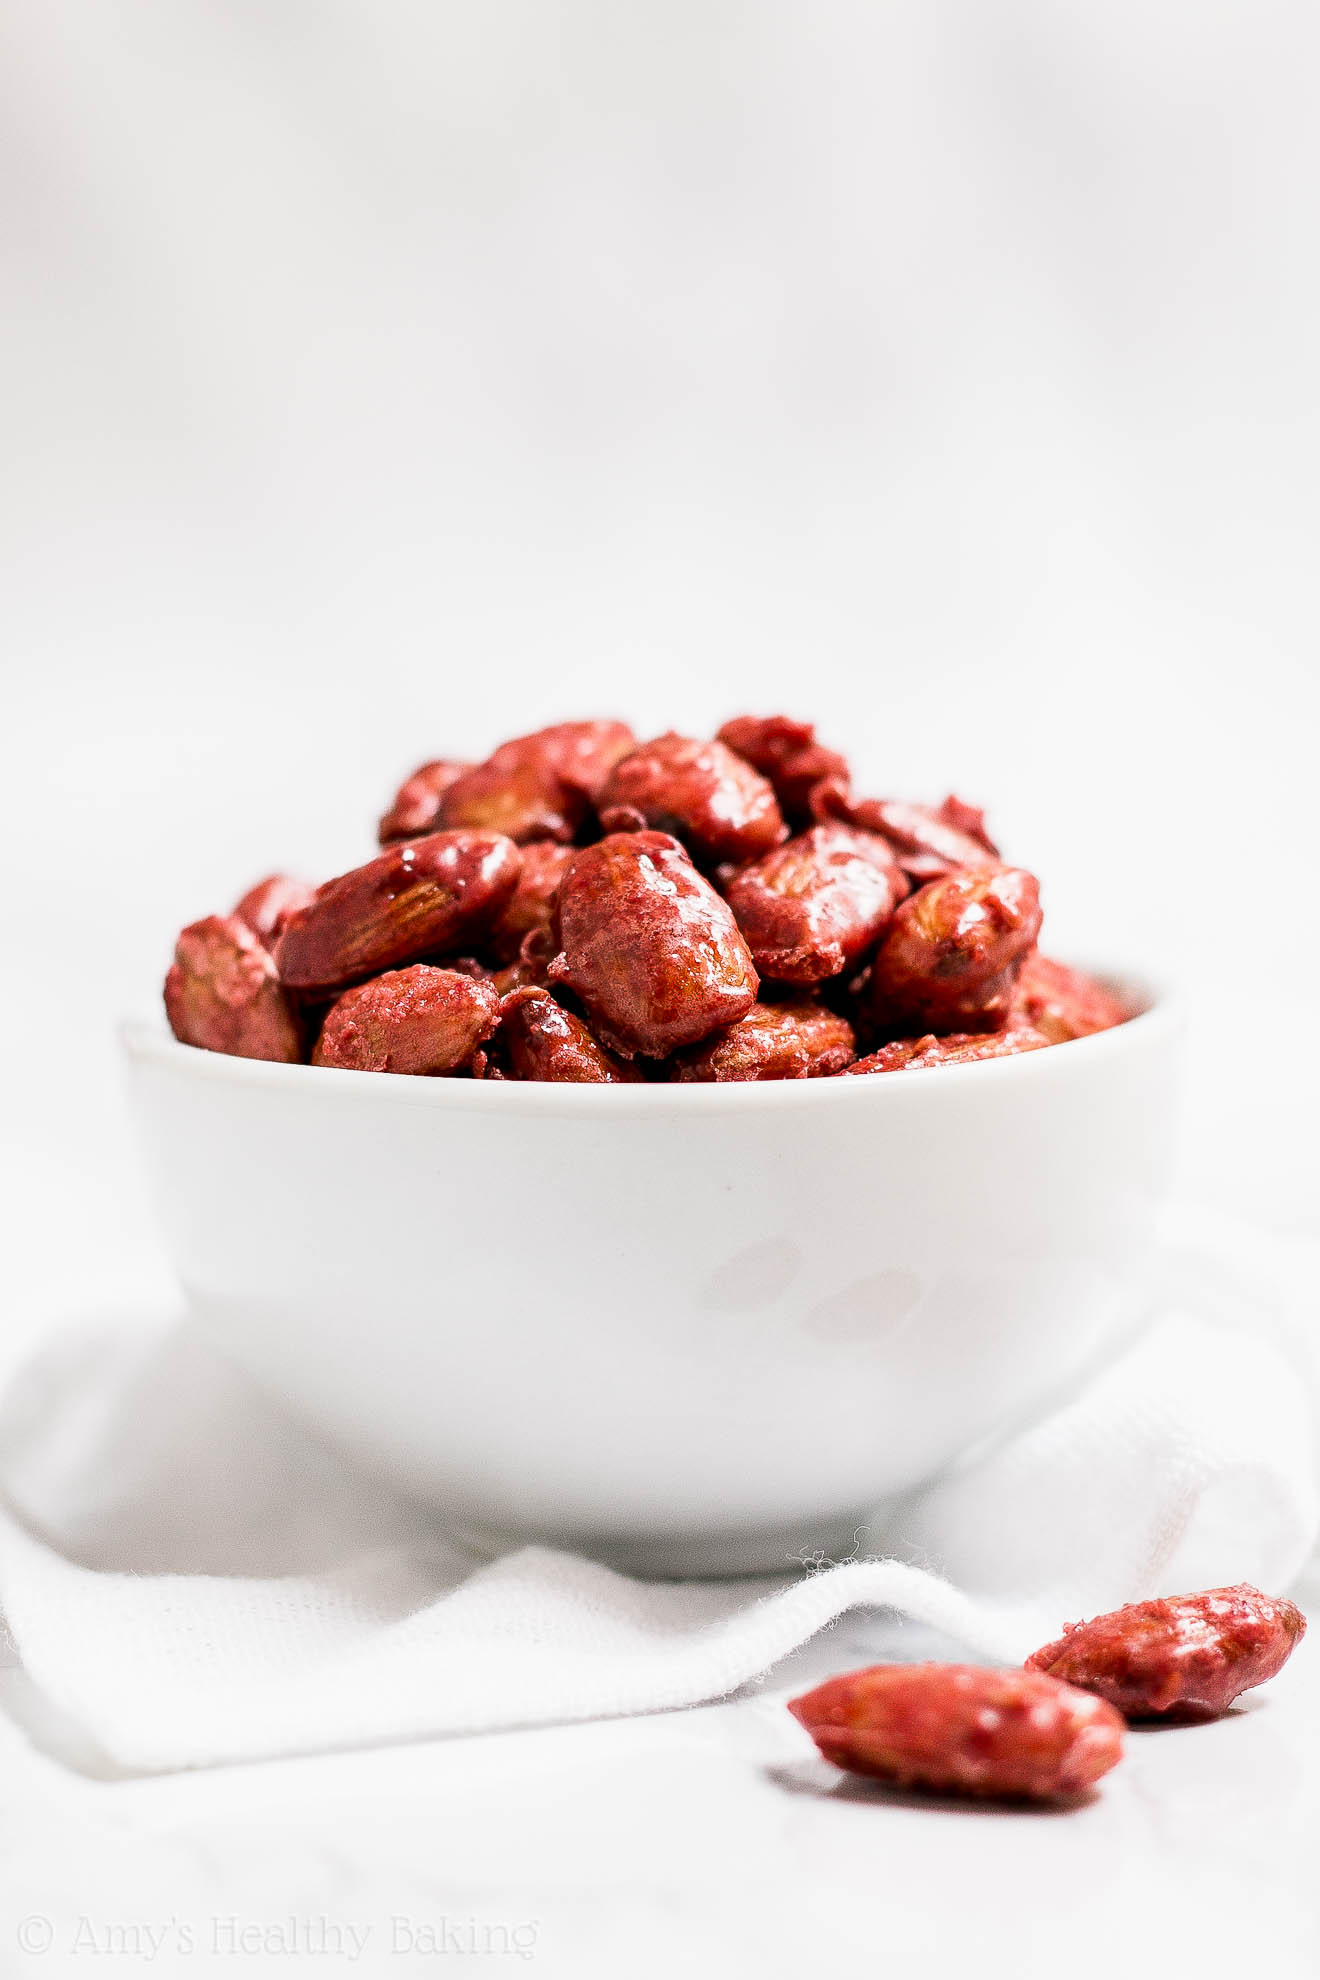 Easy Healthy Sugar Free Raspberry Candied Almonds